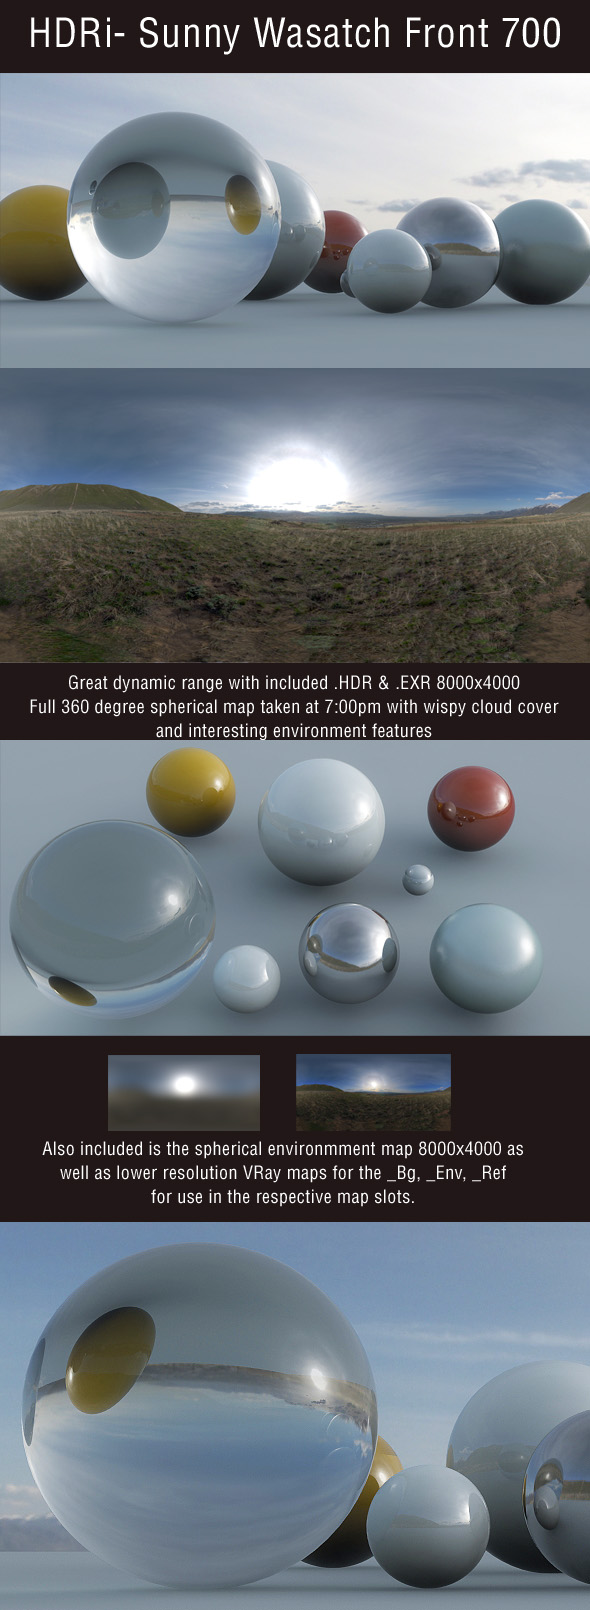 3DOcean HDRi Sunny Wasatch Front 700 100958